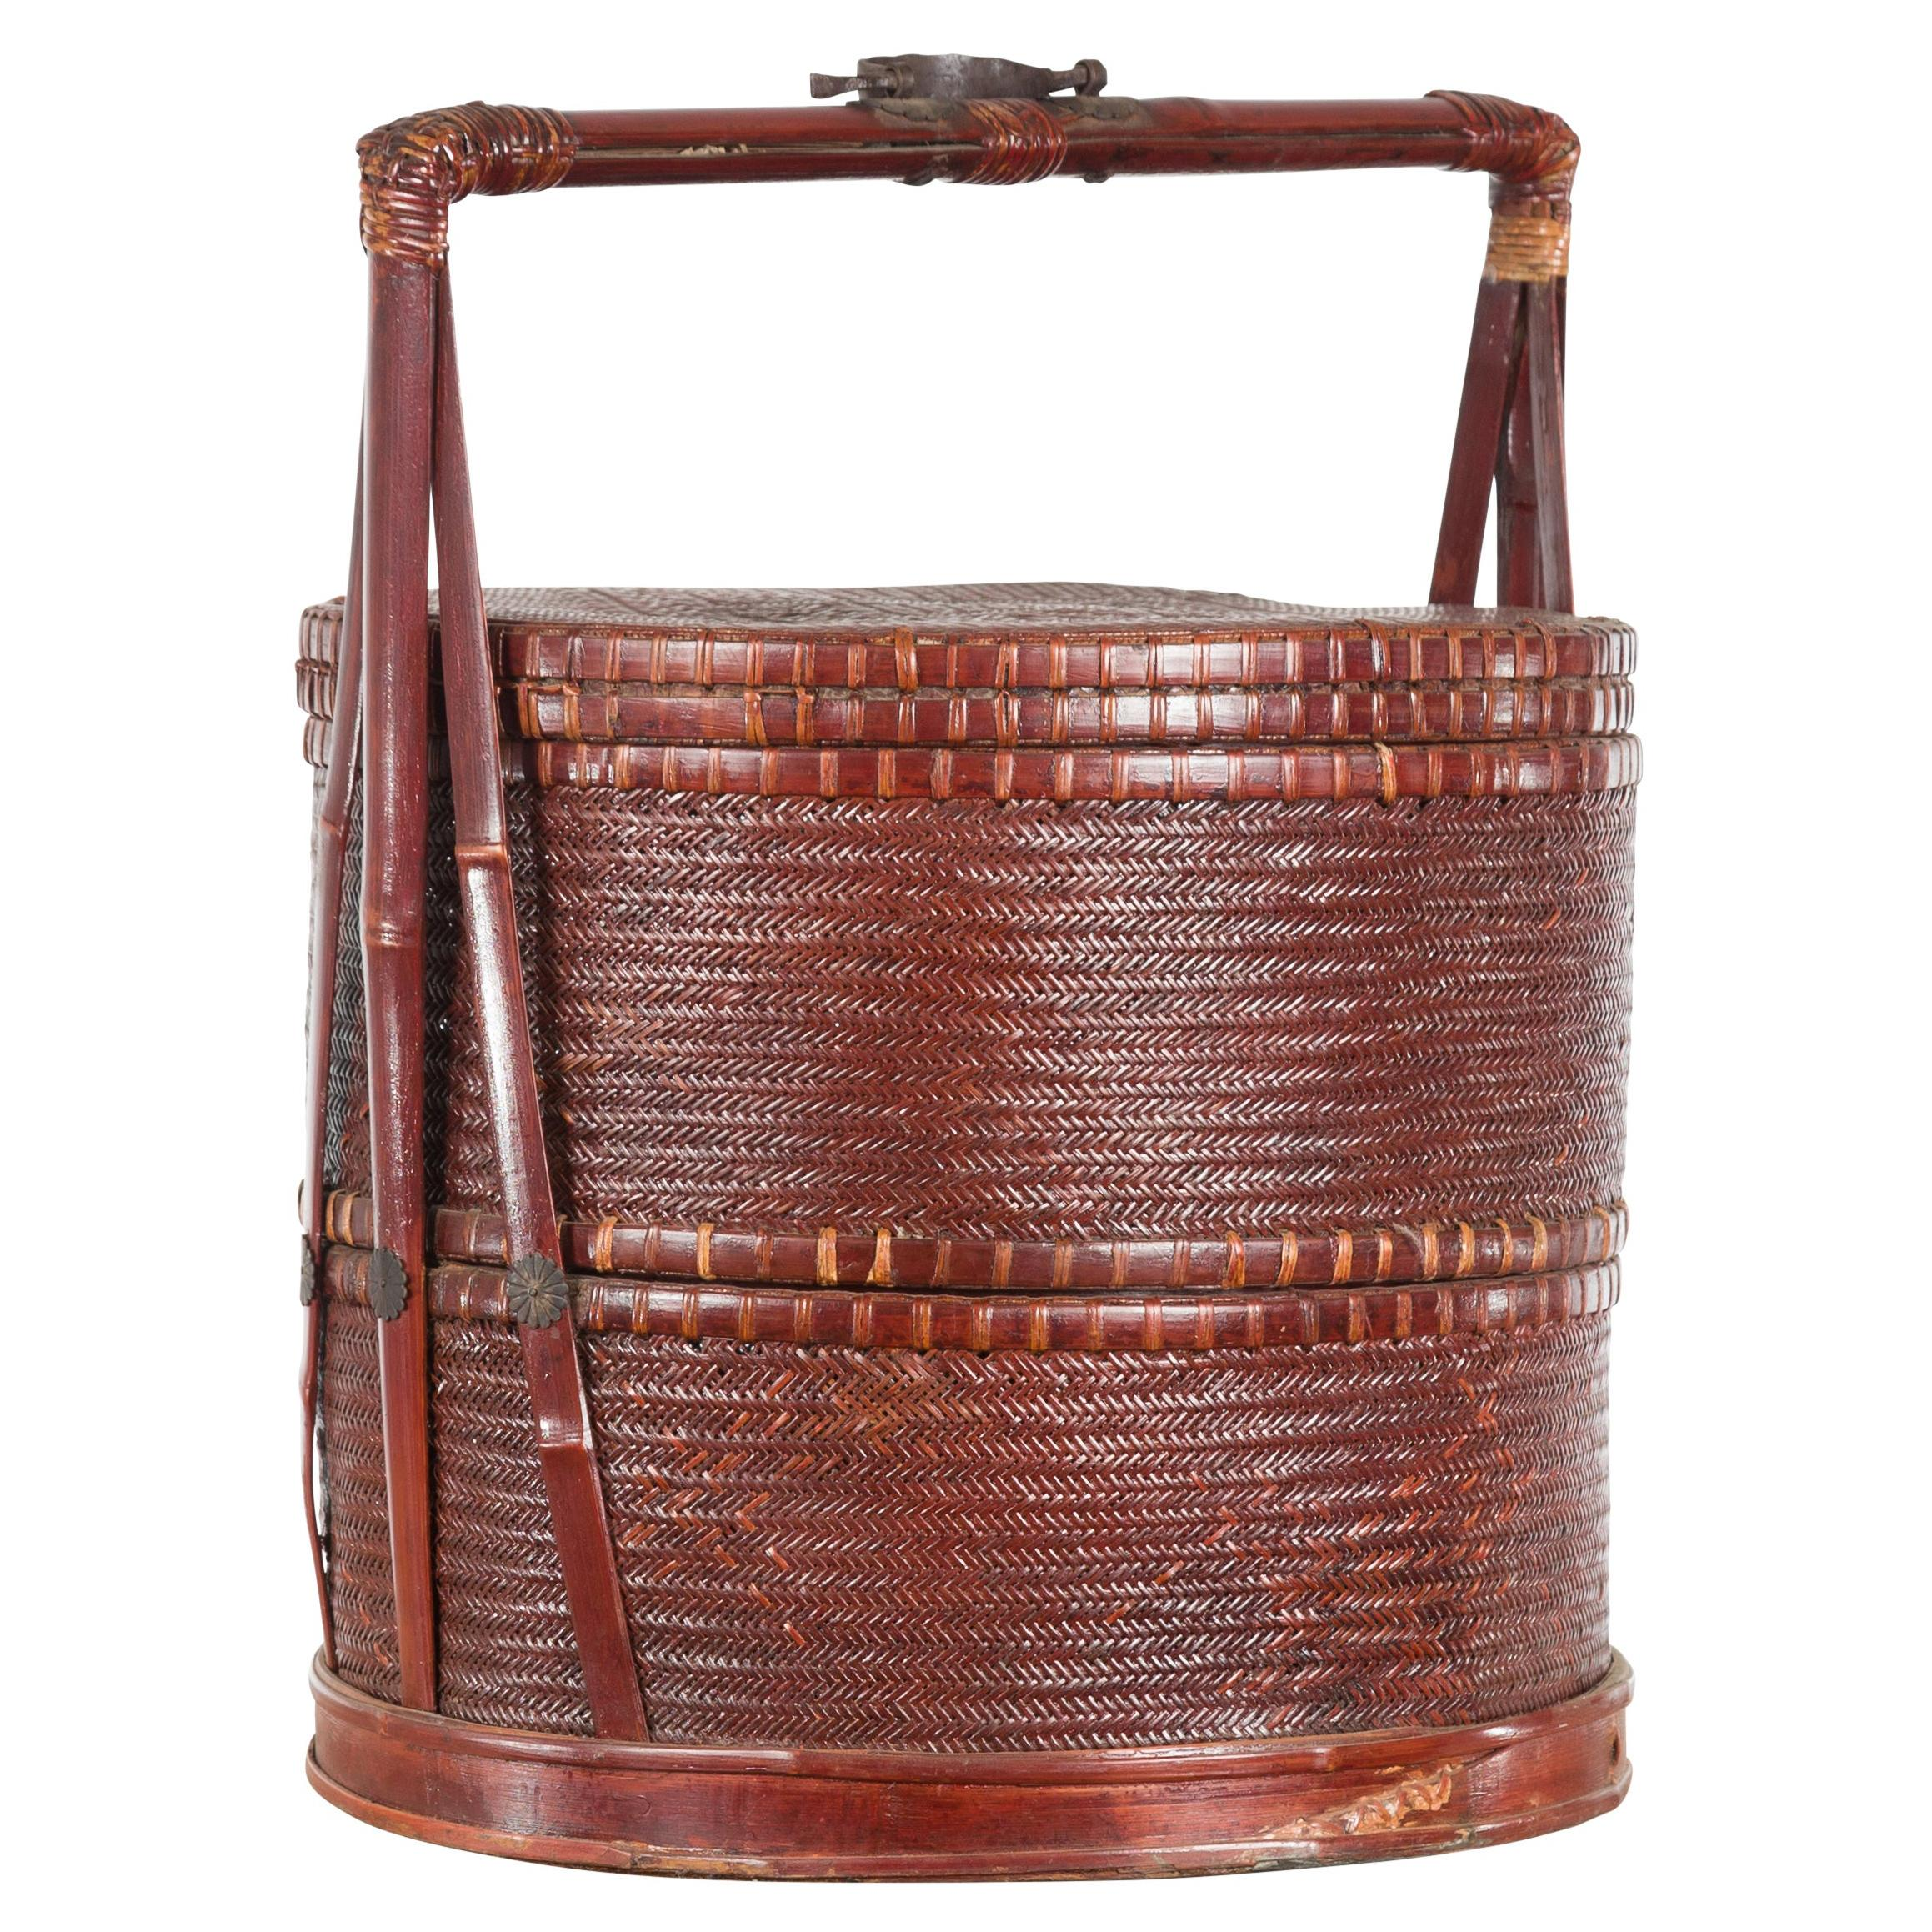 Vintage Chinese Woven Rattan and Bamboo Carrying Basket with Handle